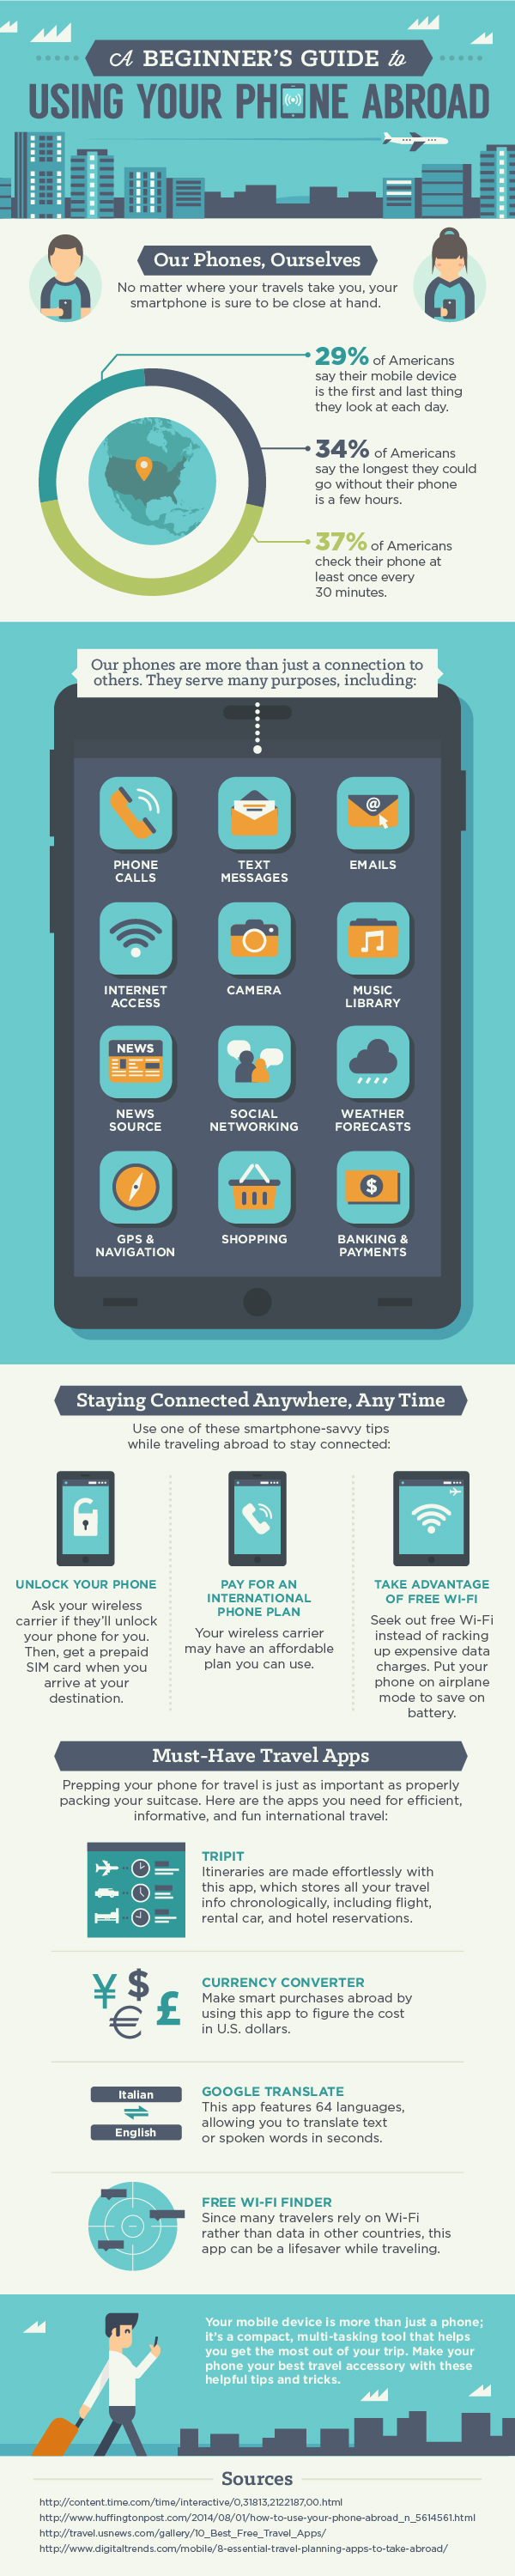 Using your smart phone abroad